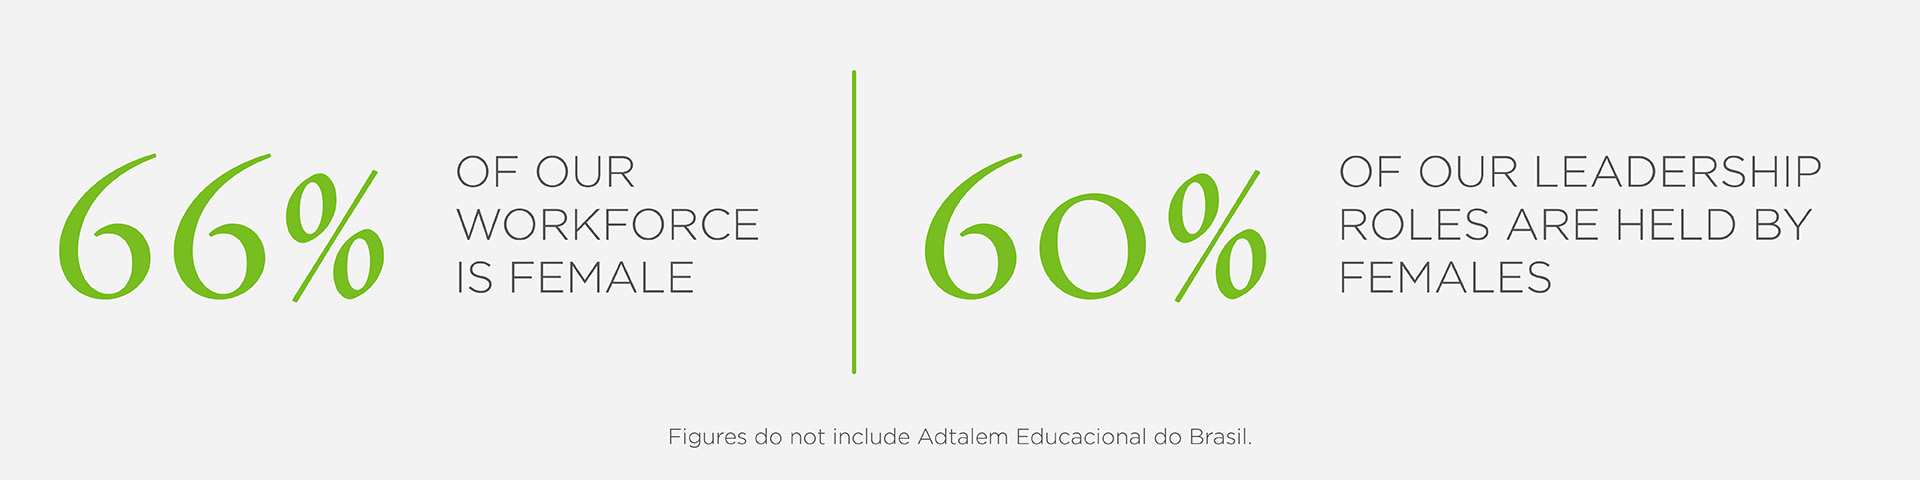 Statistics on the gender diversity of Adtalem's workforce